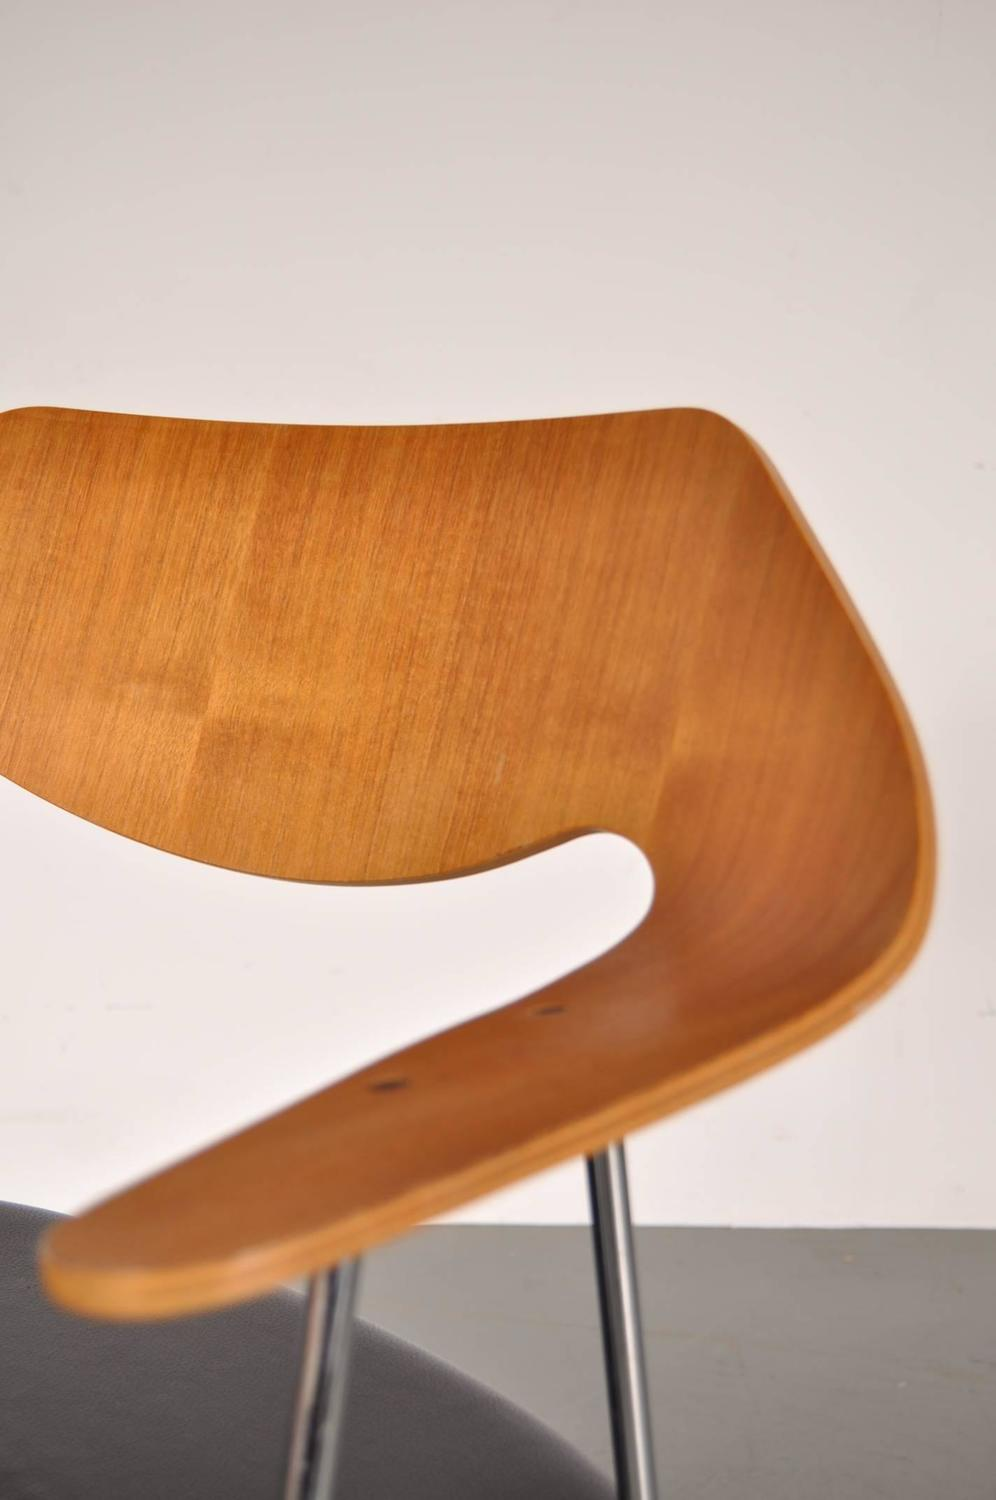 side chair by robin day for hille uk circa 1950 for sale at 1stdibs